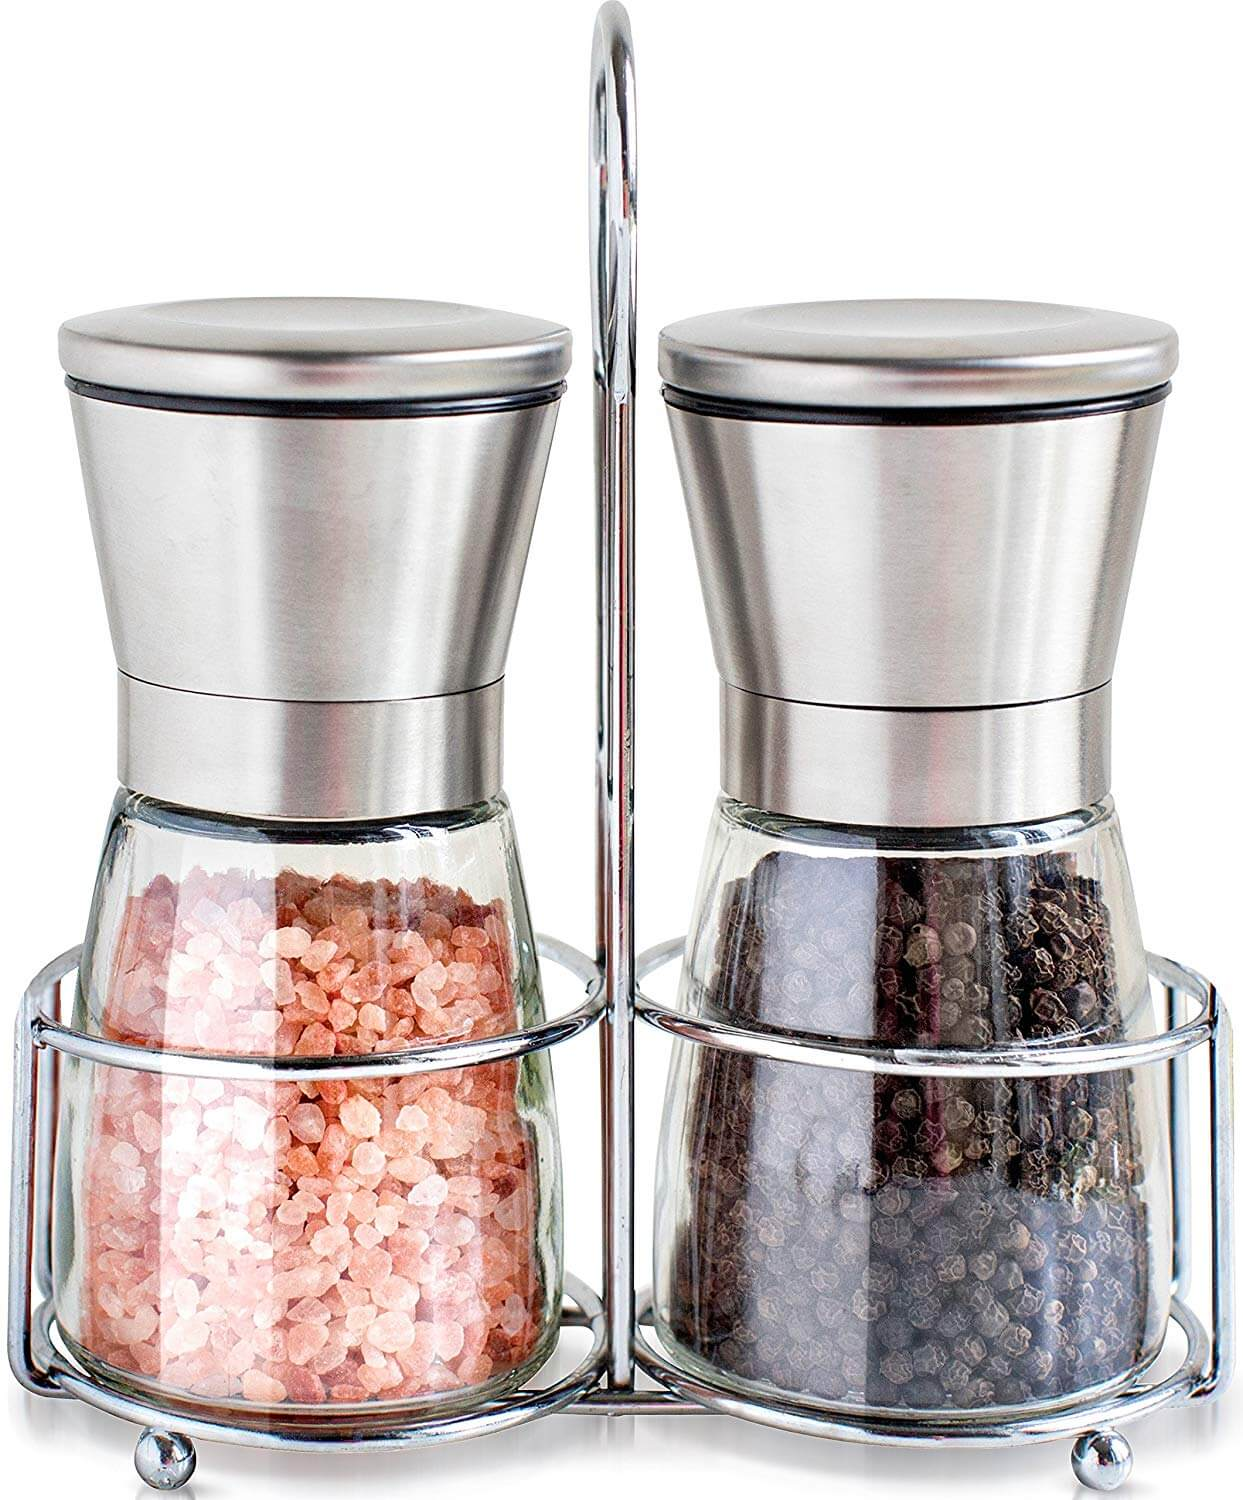 Willow and Everett Premium Stainless Steel Salt and Pepper Grinder Set